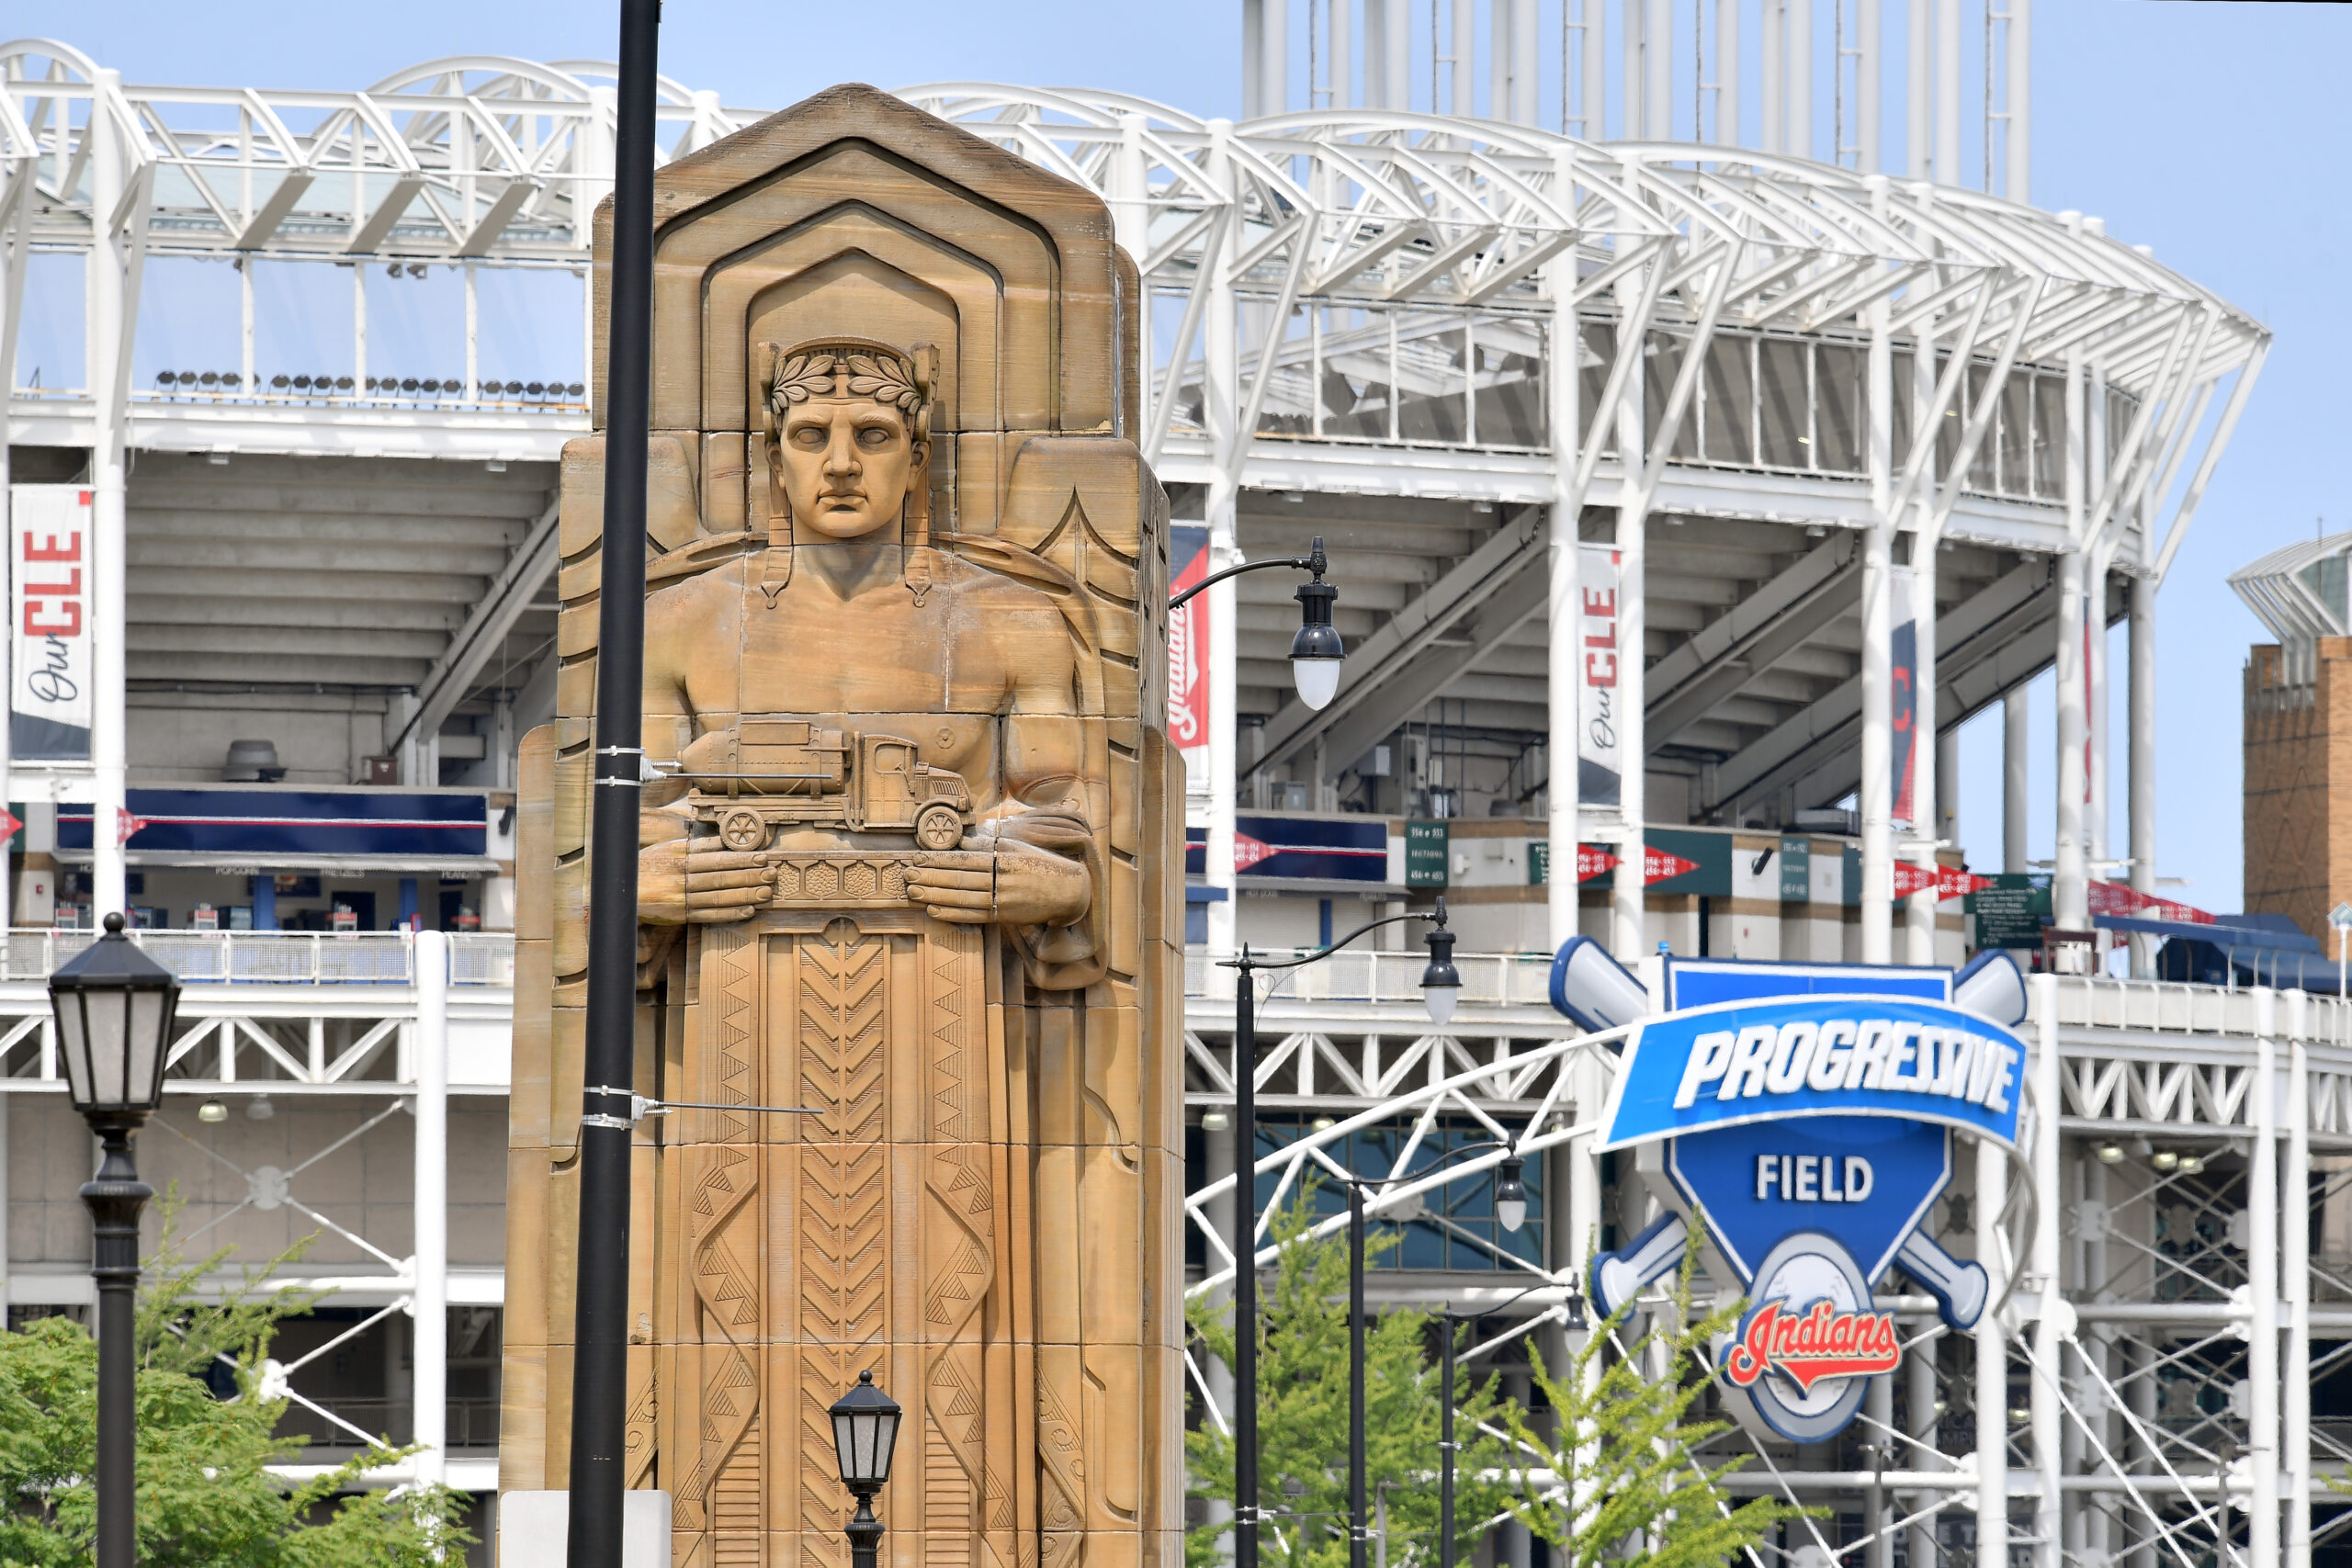 The Guardians of Traffic sculptures on the Hope Memorial Bridge near Progressive Field are the inspiration for the renaming of the Cleveland Indians to the Cleveland Guardians at the end of the 2021 season. The Indians announced the change at Progressive Field on July 23, 2021, in Cleveland, Ohio.